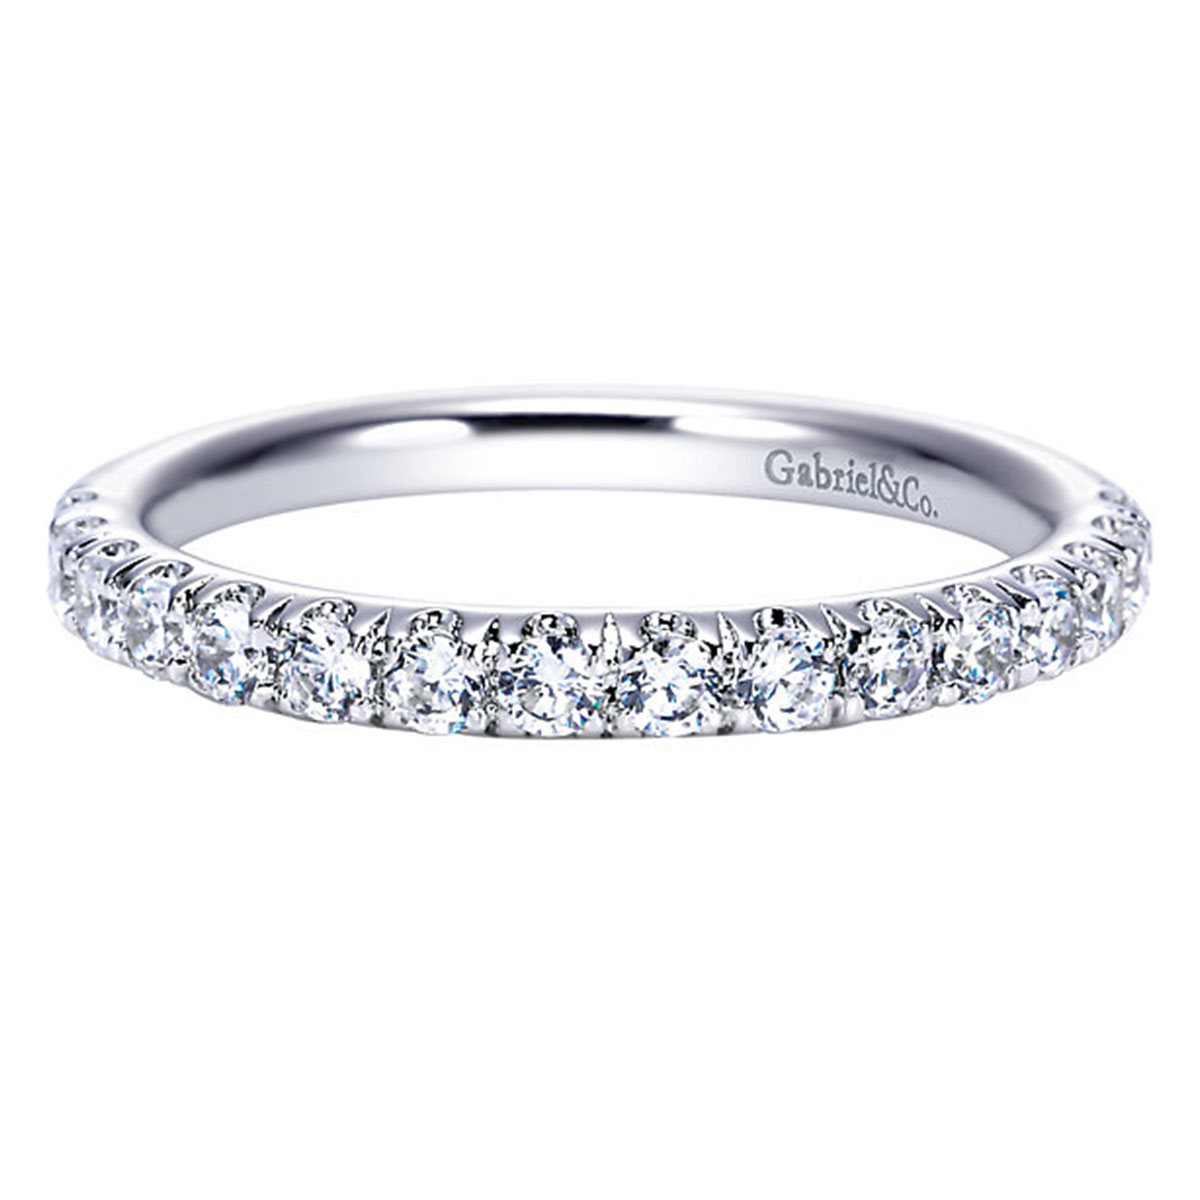 Gabriel & Co Engagement Rings 51ctw Anniversary Wedding Band